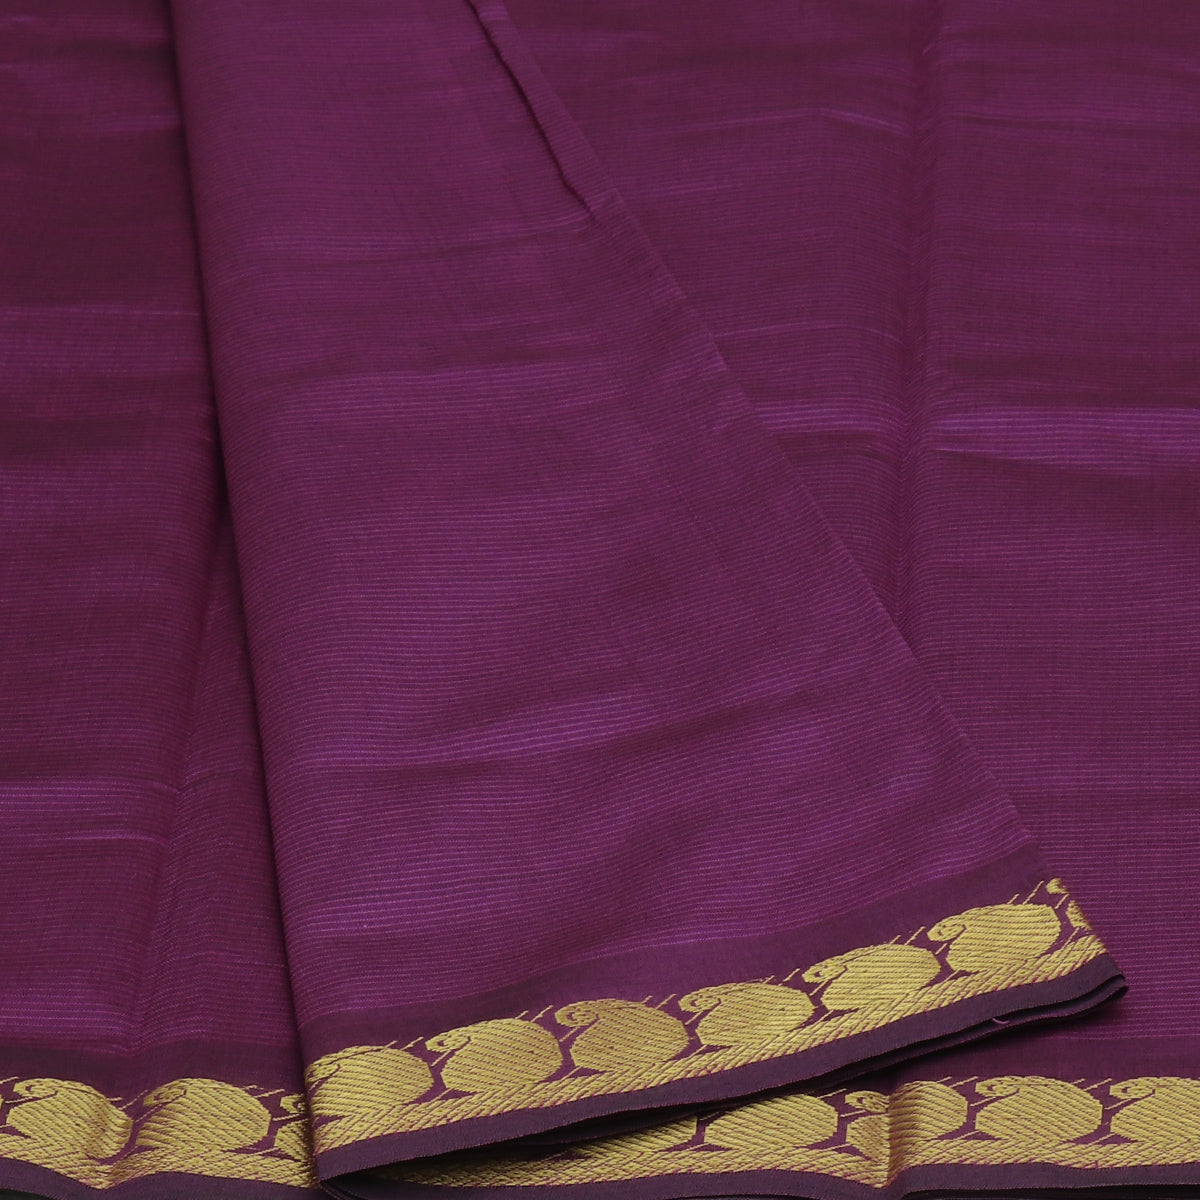 Blended Cotton Saree Violet and Green with Mango zari border 9 yards